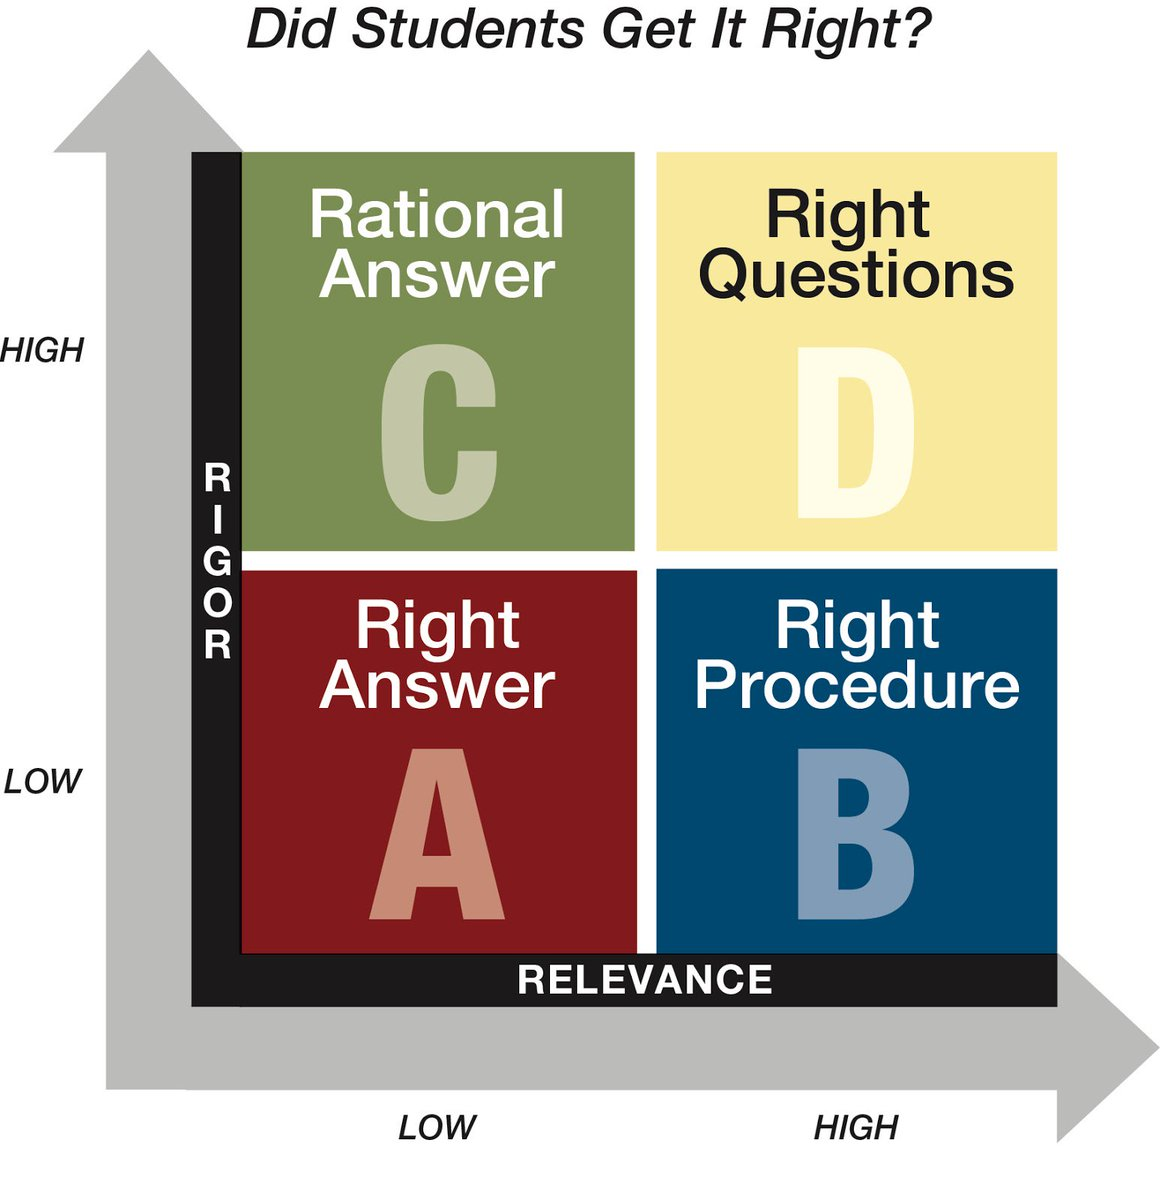 The Right Questions esheninger.blogspot.com/2019/07/the-ri… #edchat #pedagogy